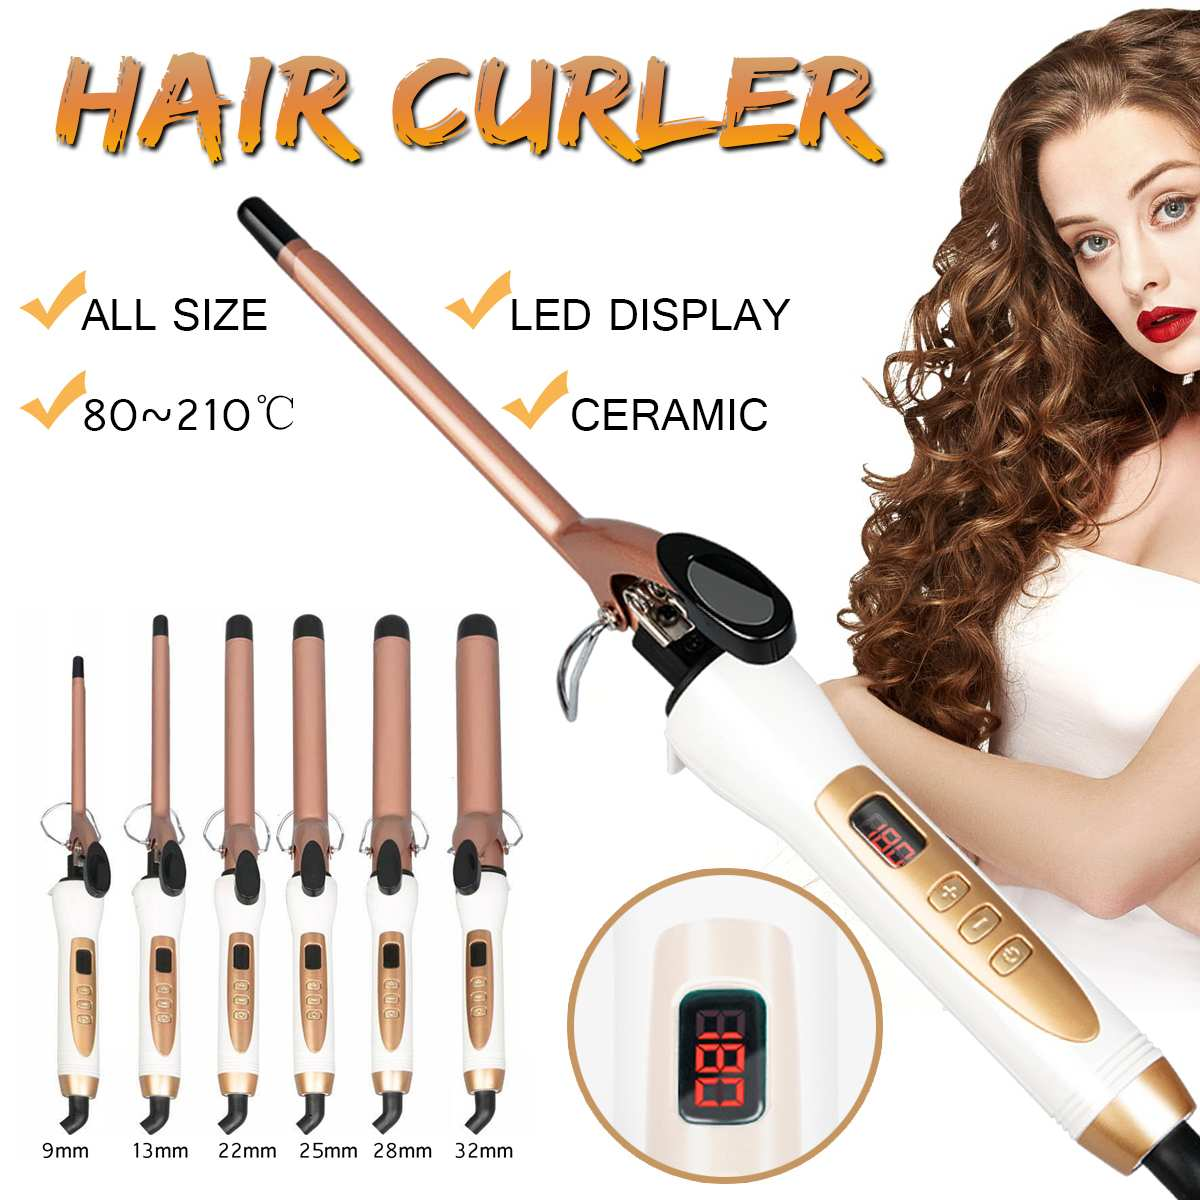 Ceramic Hair Curler Quick Heat Curling Tongs LED Dry and Wet Curling Hair Waver Styling Tool Multi size 9/13/22/25/28/32mmCeramic Hair Curler Quick Heat Curling Tongs LED Dry and Wet Curling Hair Waver Styling Tool Multi size 9/13/22/25/28/32mm